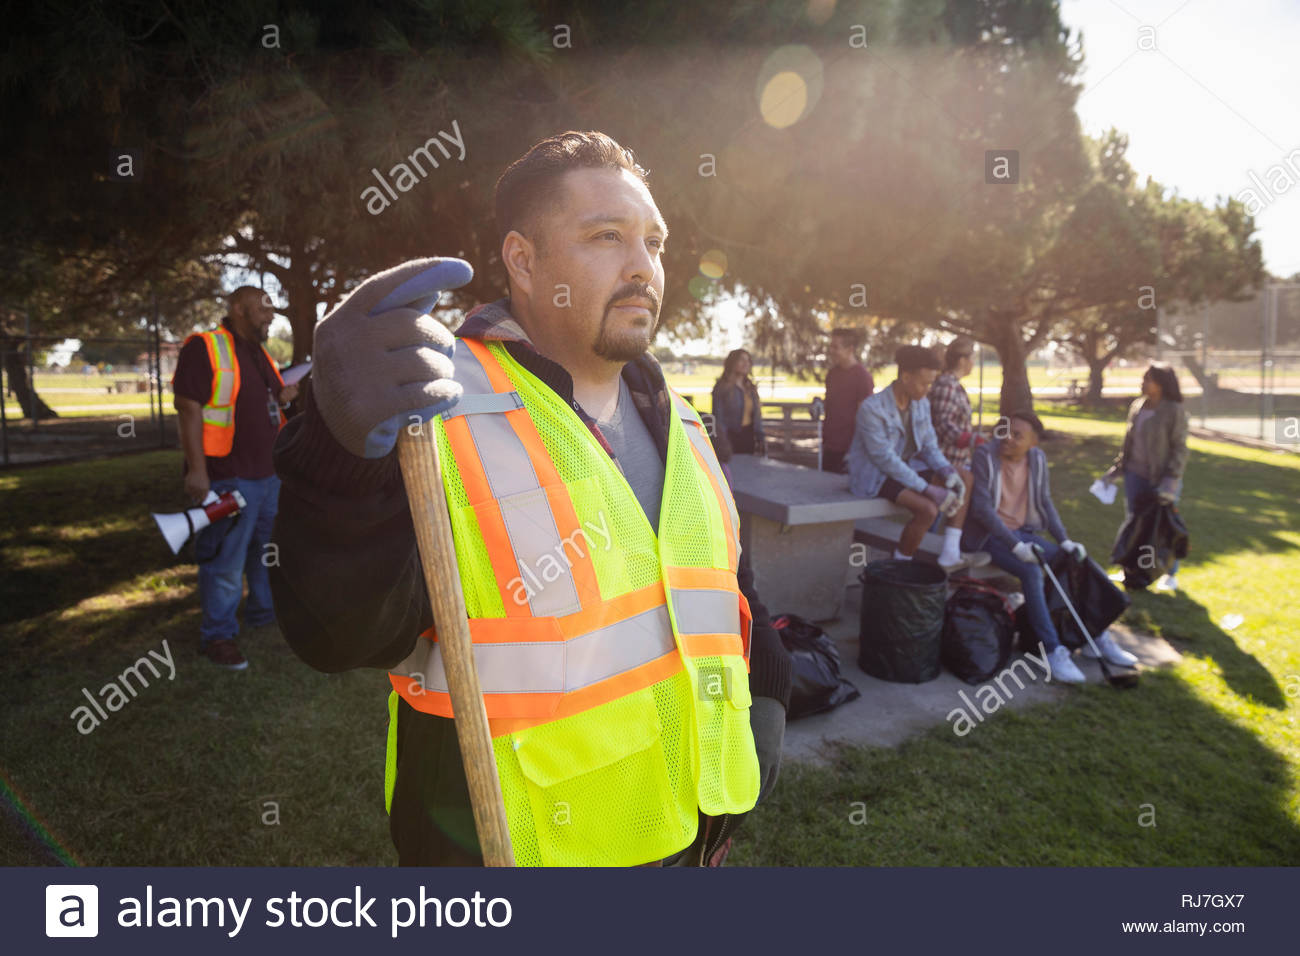 Focused volunteer in reflective vest cleaning park - Stock Image